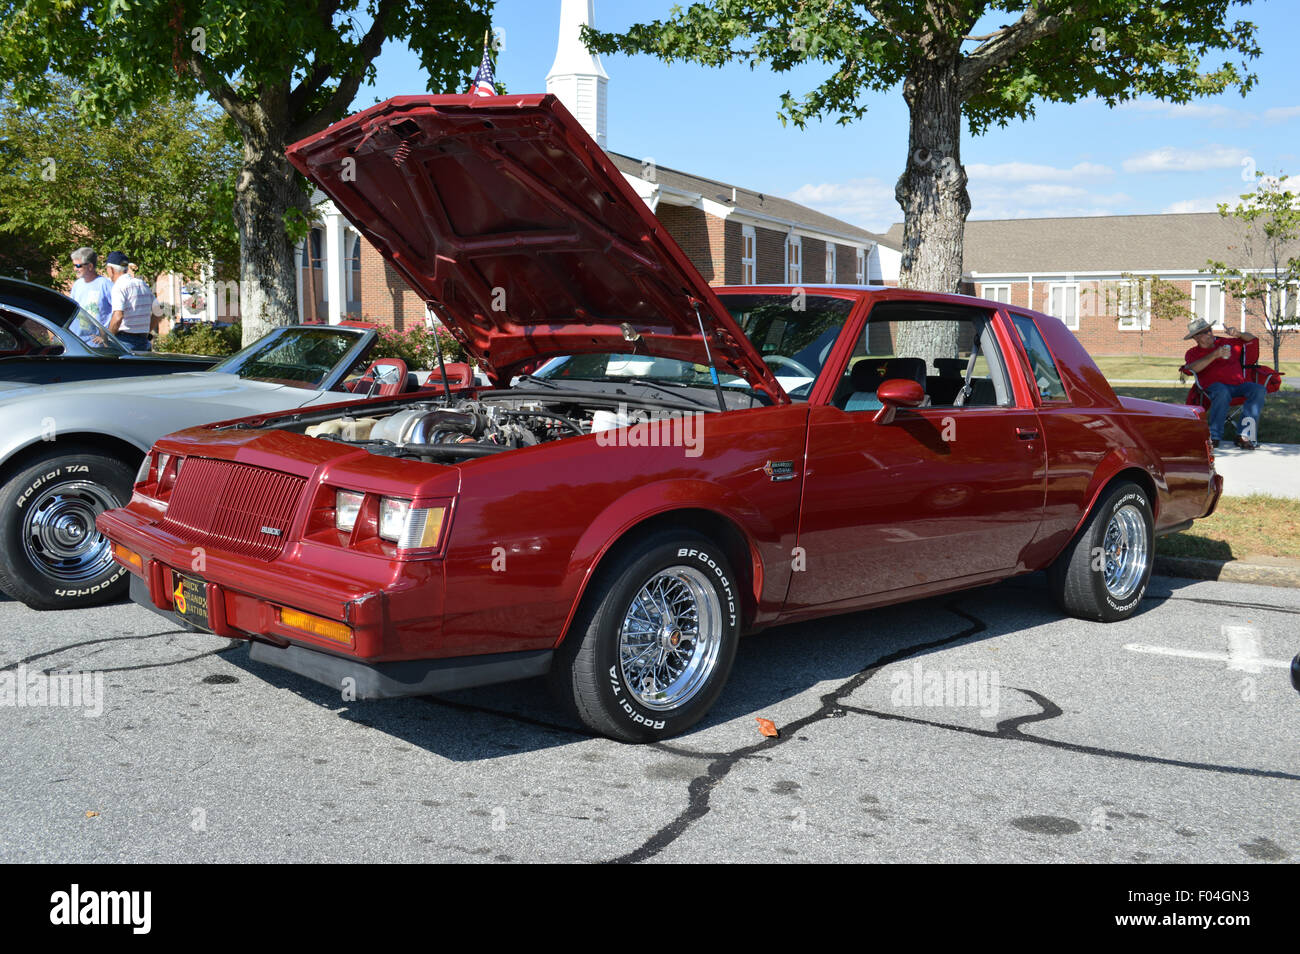 A vintage Buick Grand National Car Stock Photo: 86152783 - Alamy